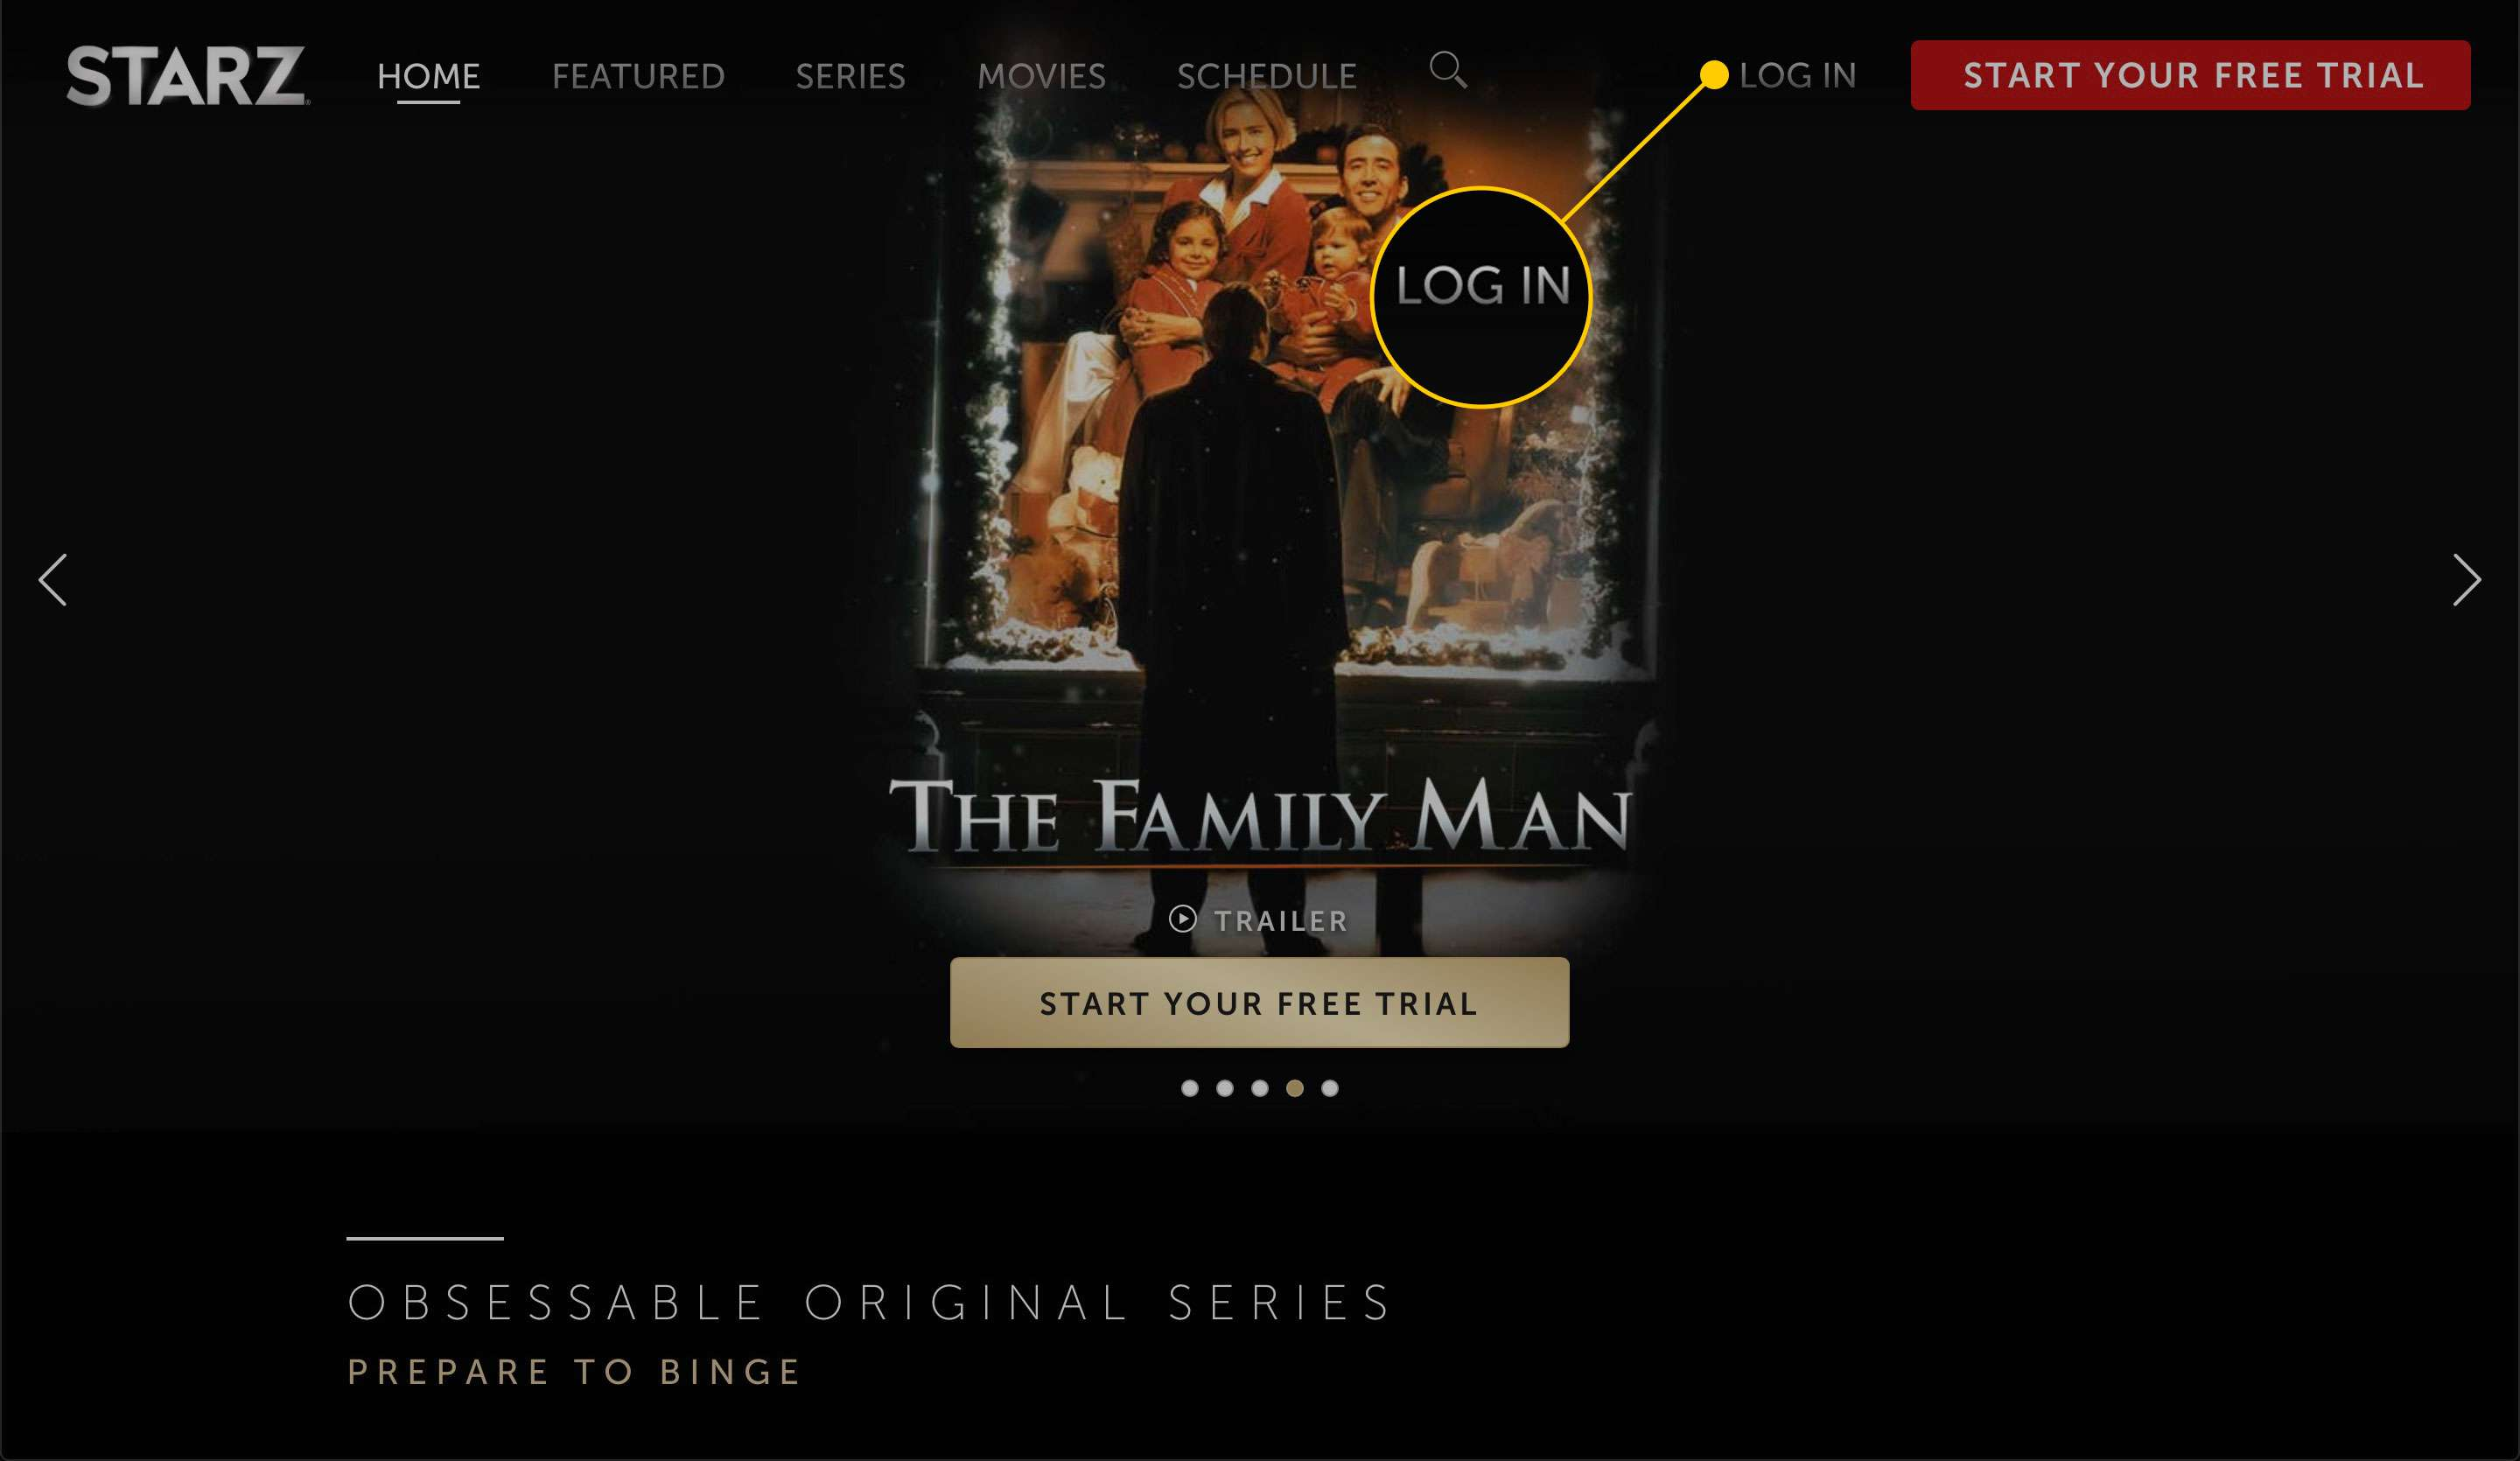 Starz home page with the Log In button highlighted